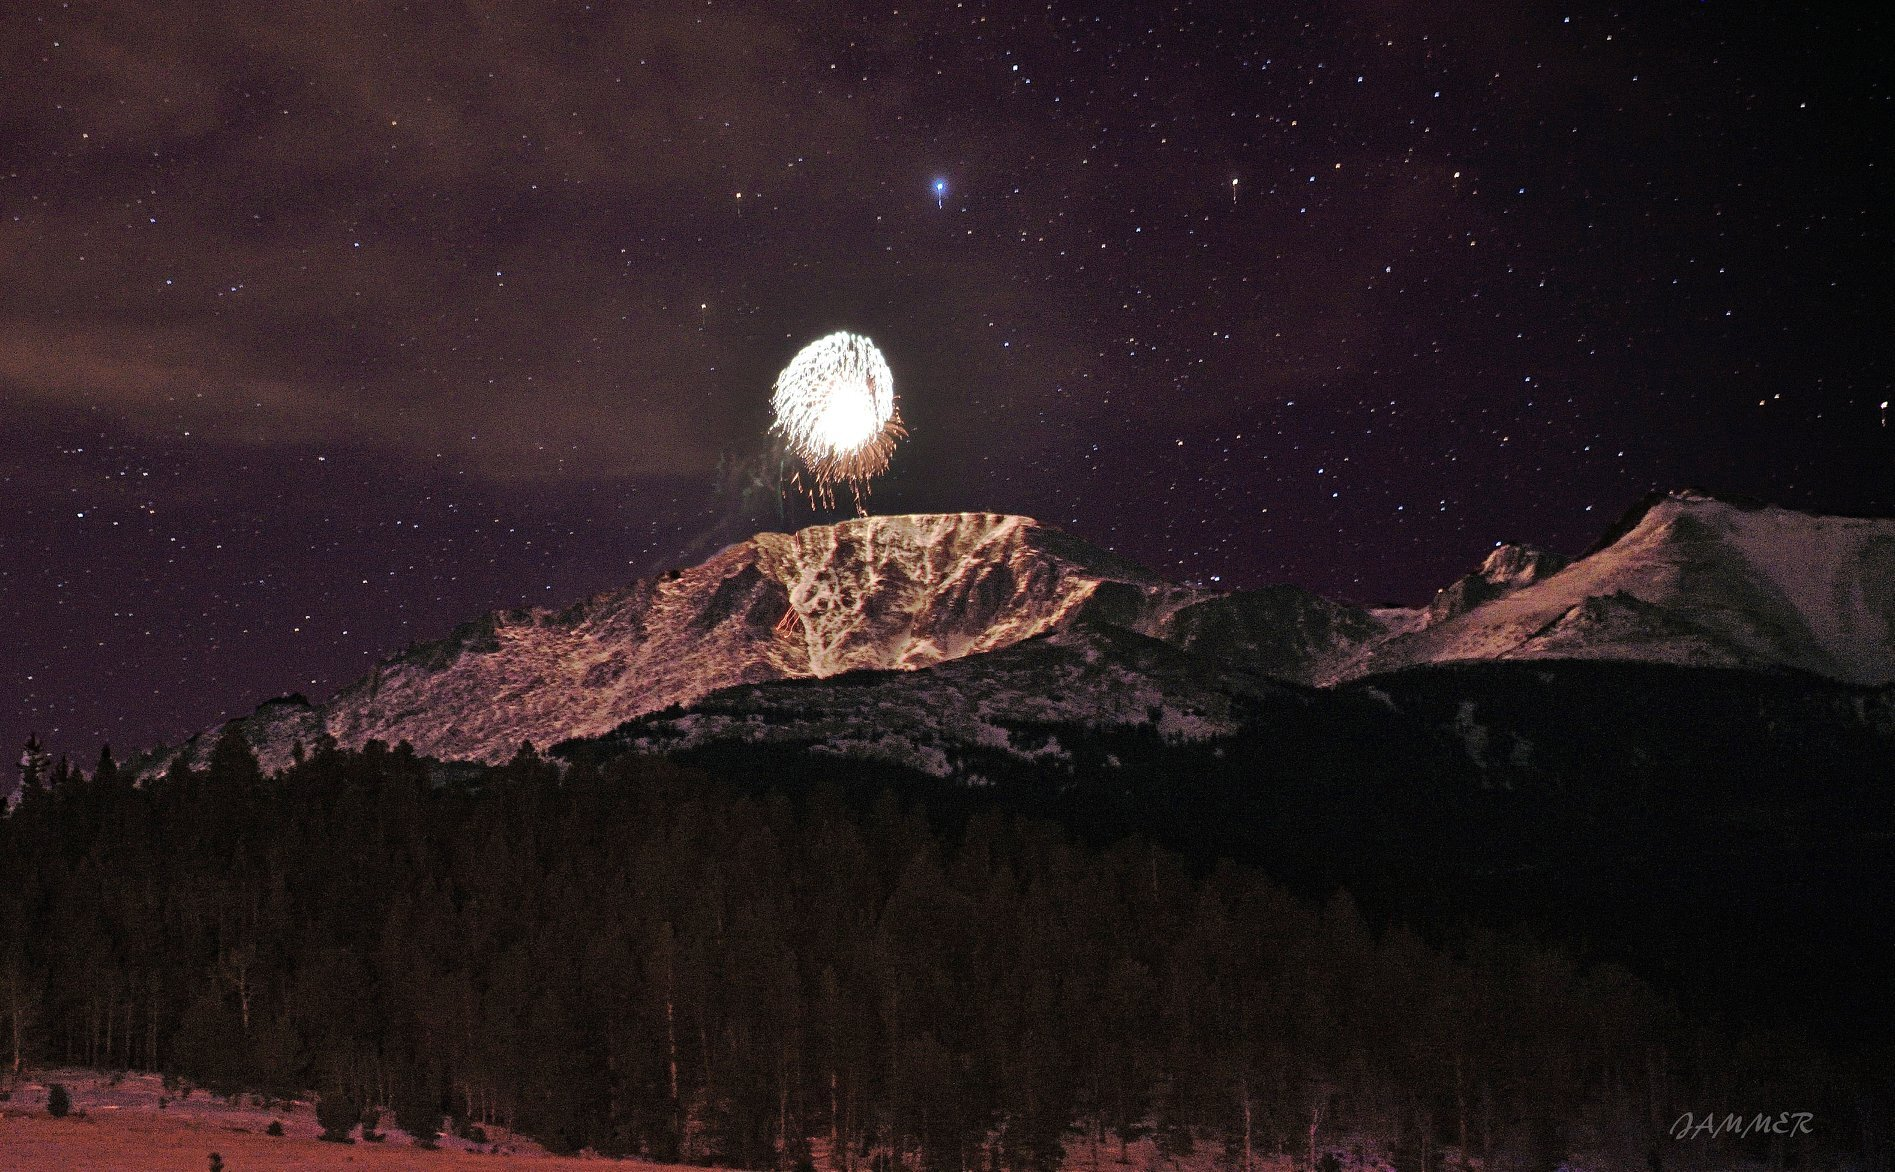 New Years Eve Fireworks on Pikes Peak from James Martinez.jpg